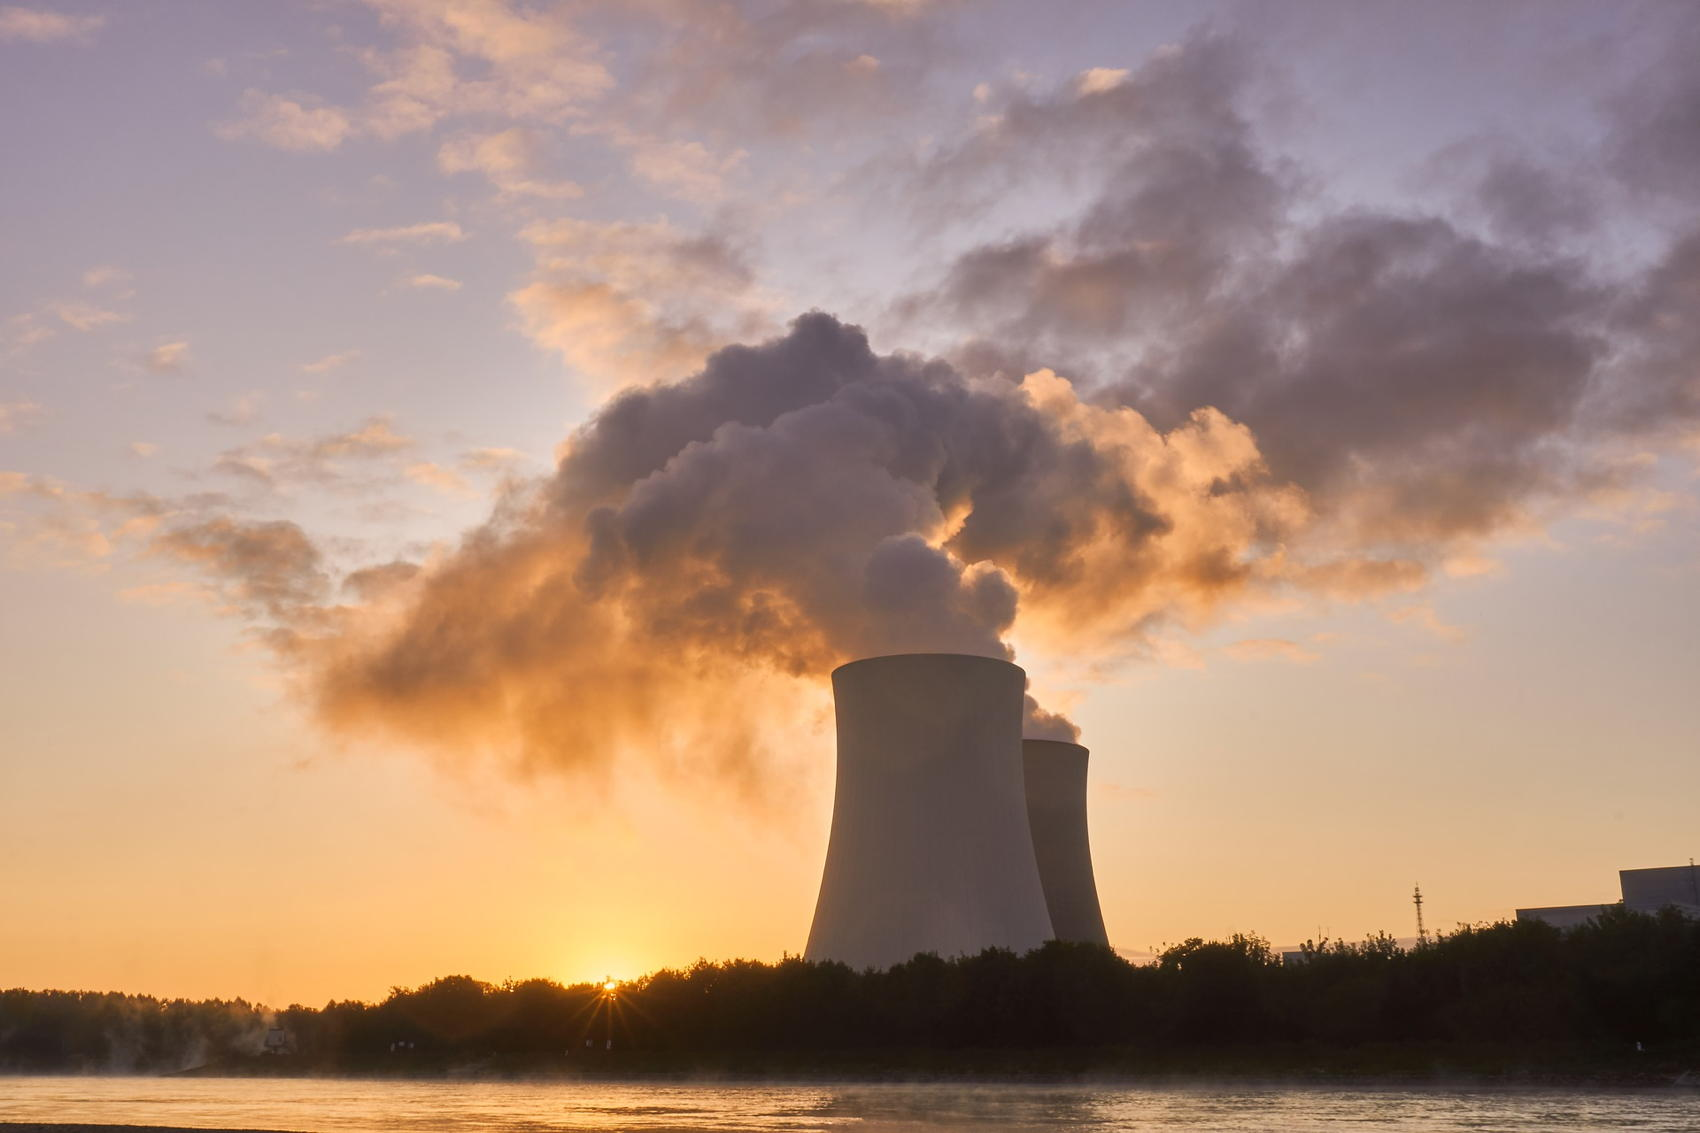 Nuclear Power Plant - Image by Markus Distelrath